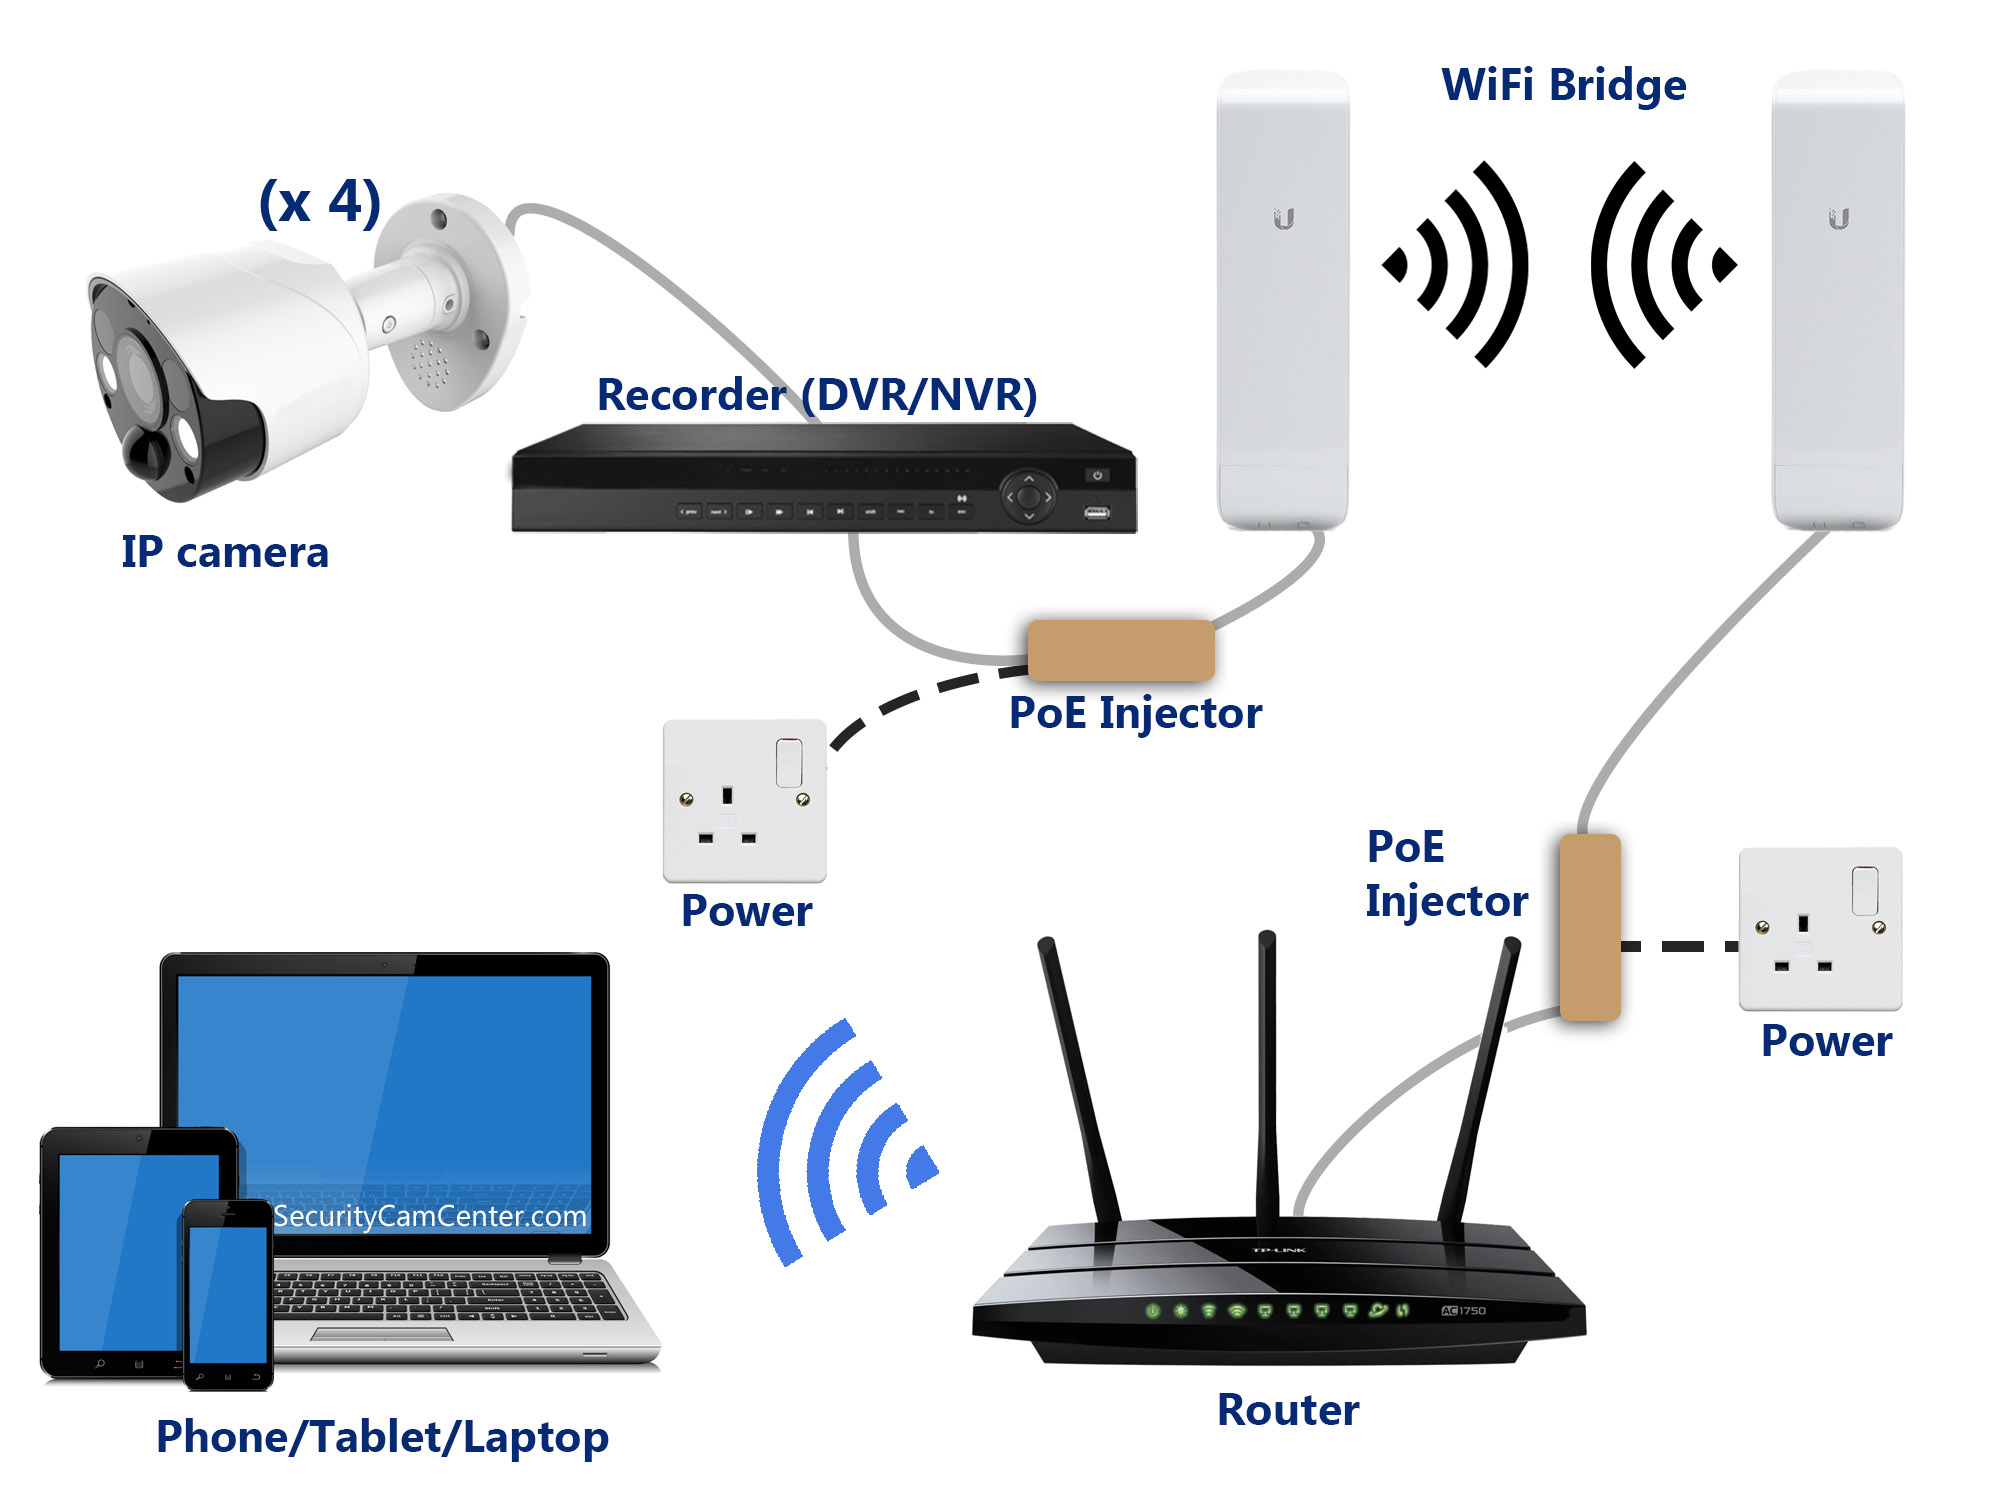 Four cameras, recorder, PoE injectors, WiFi bridges, router